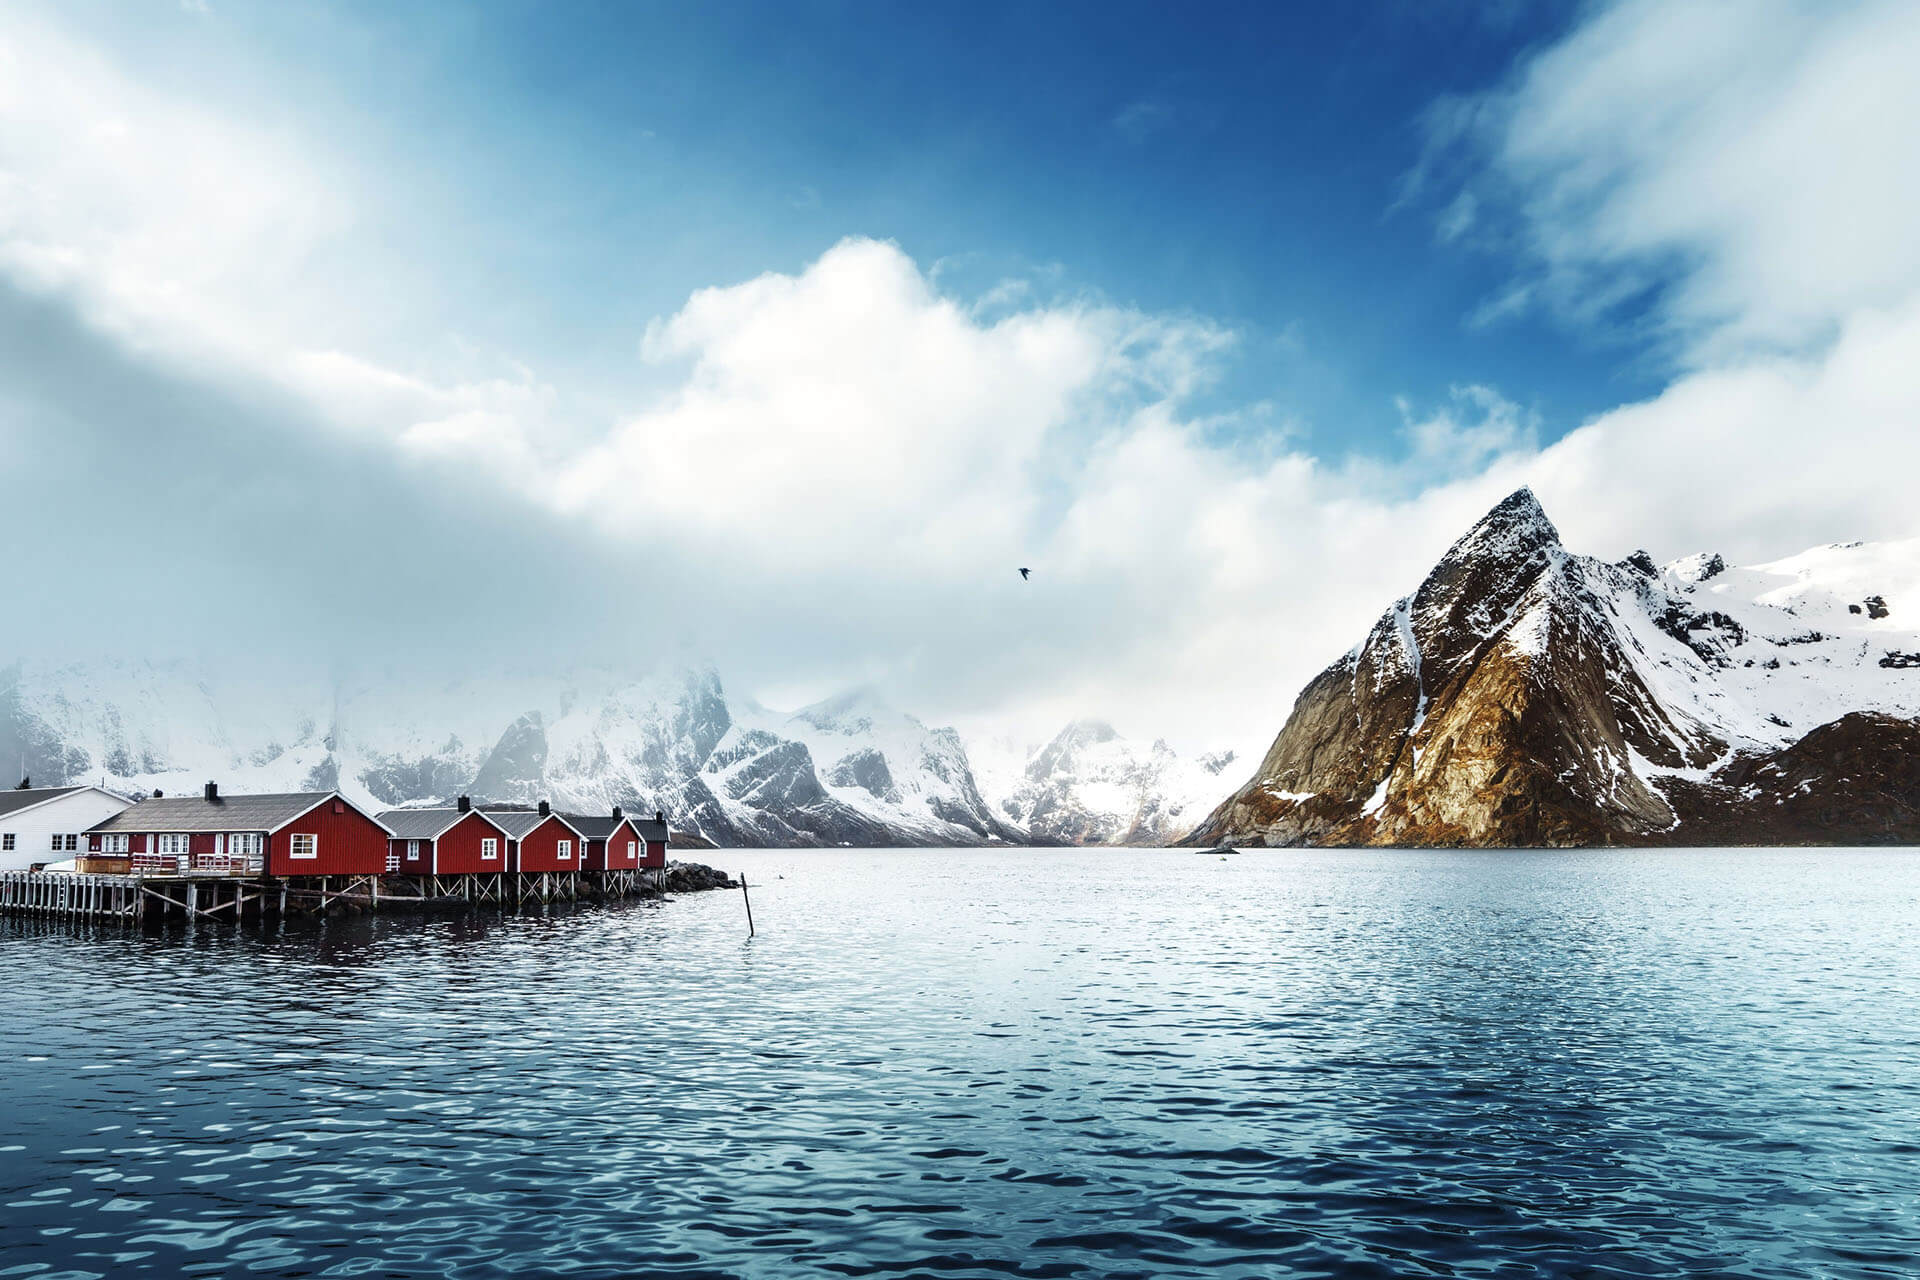 Norway: Change in Proof of Residency Requirements Announced